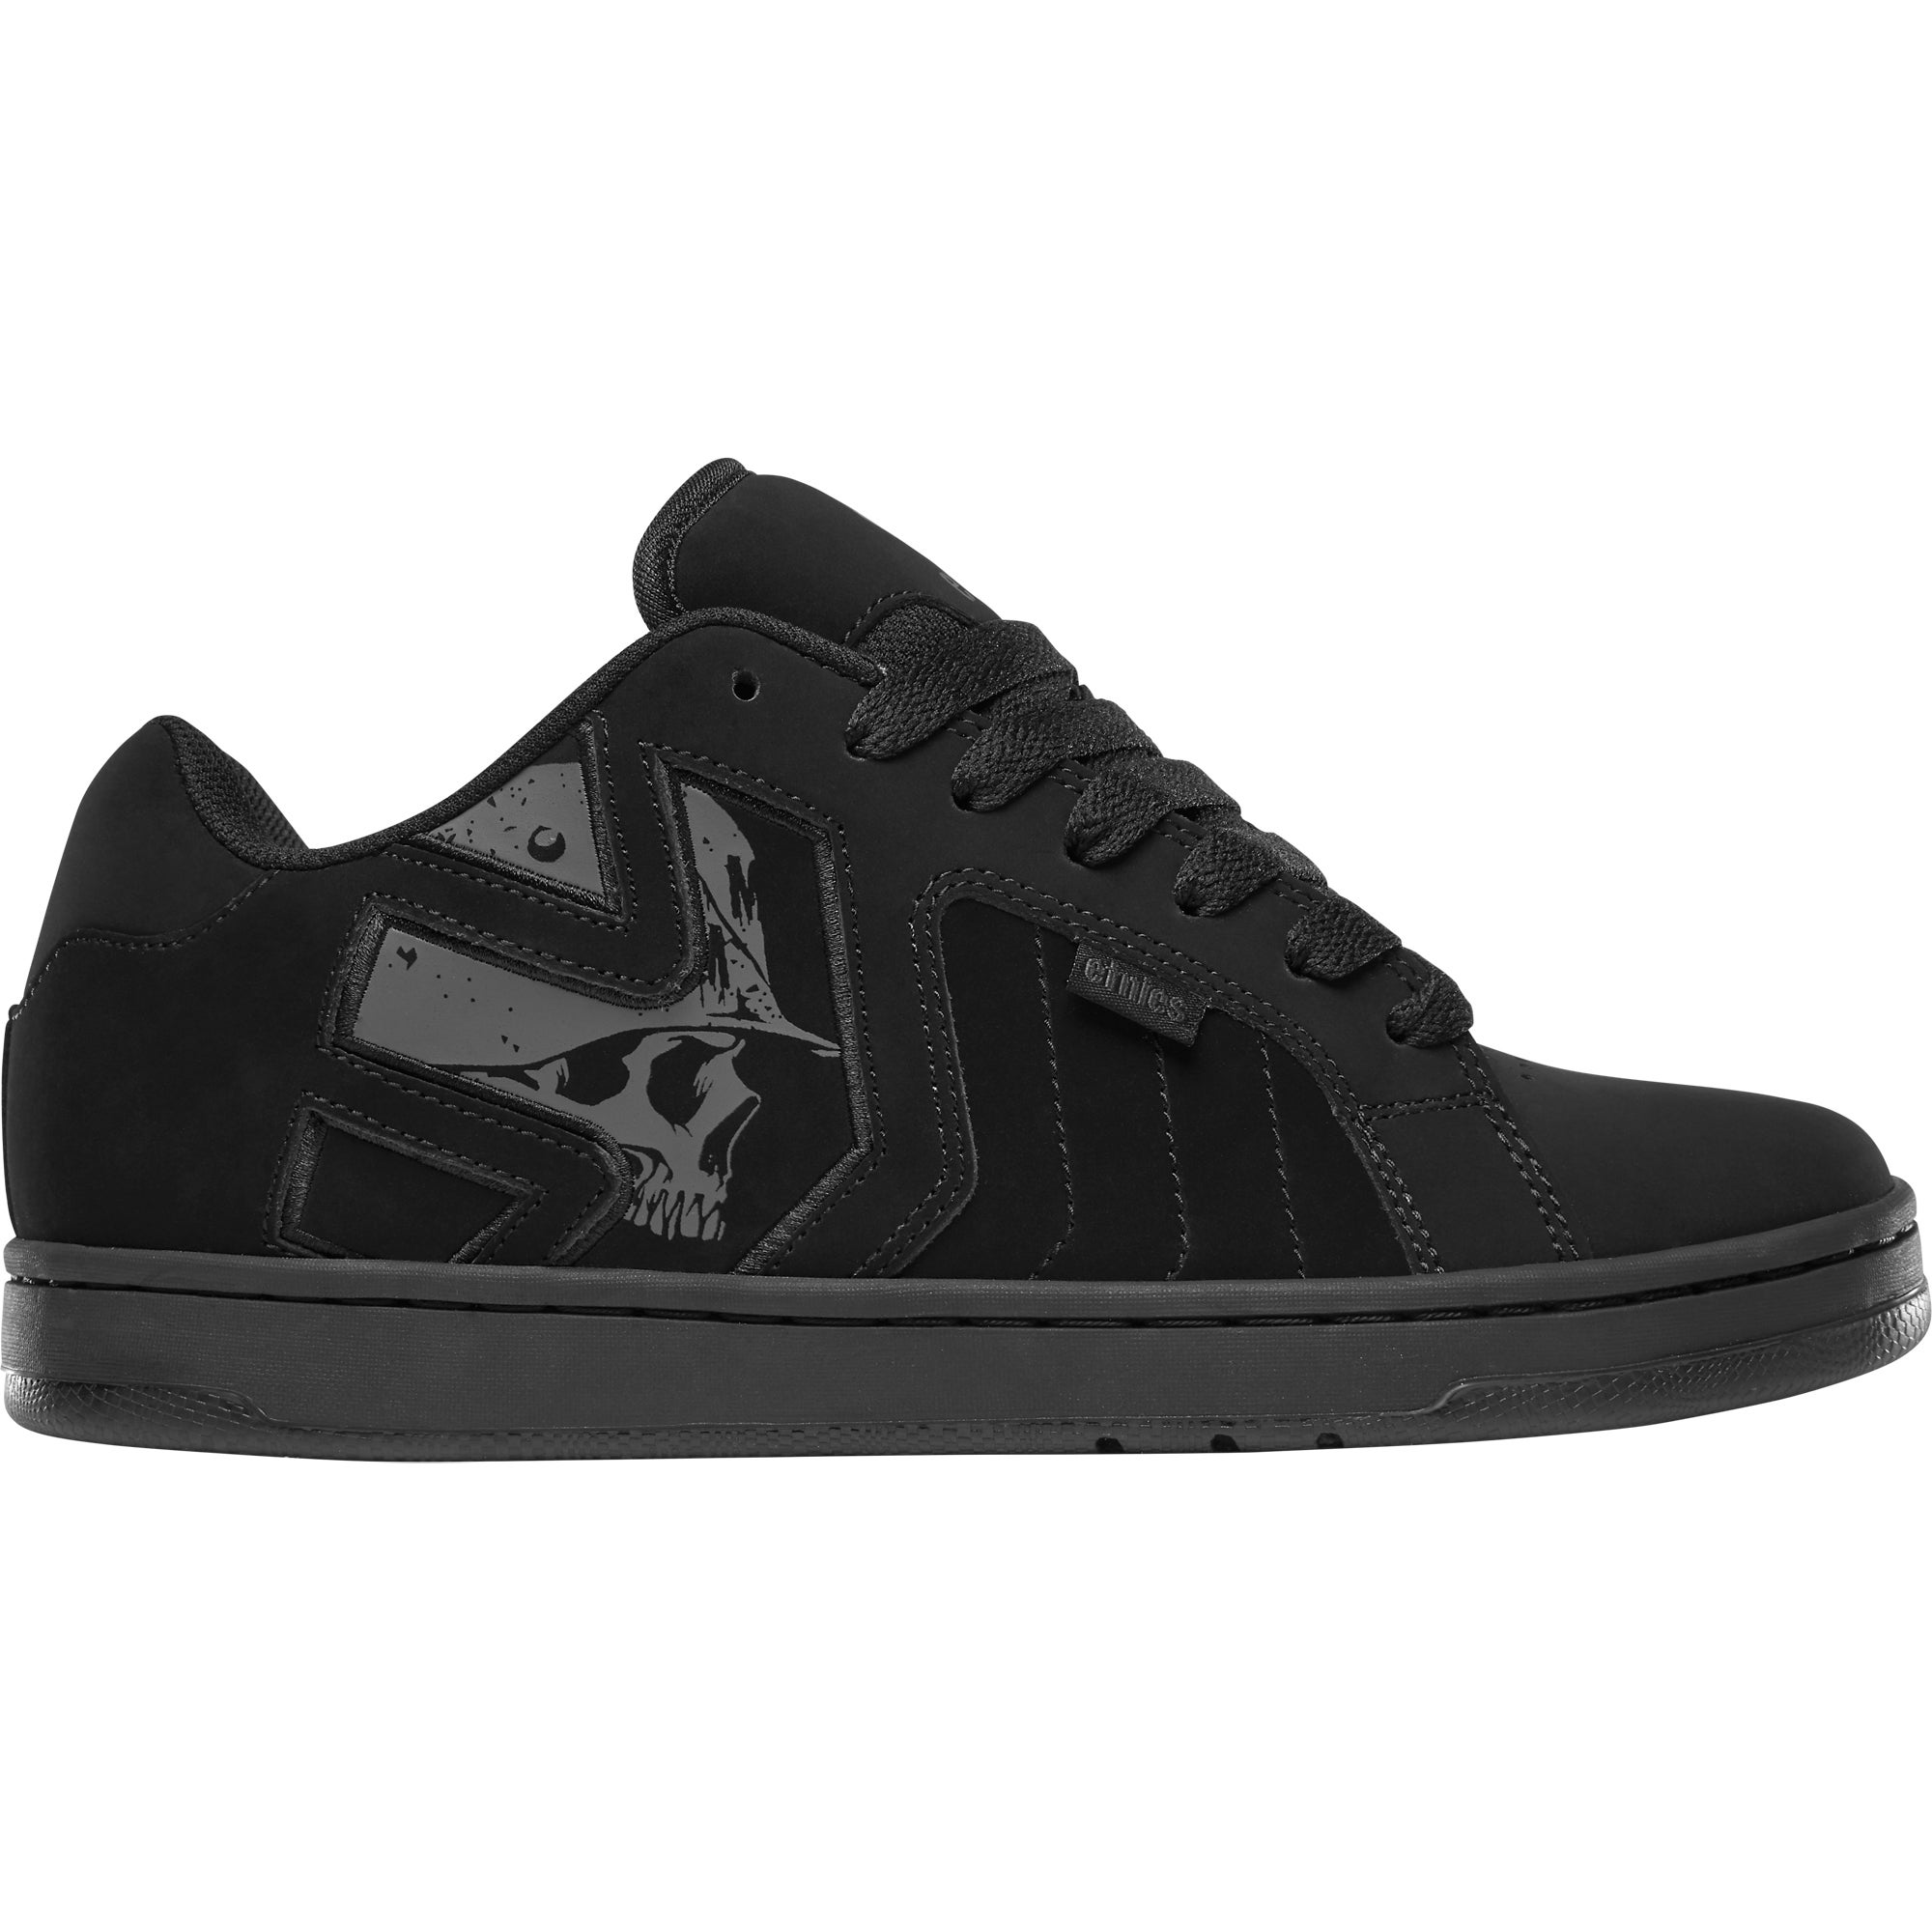 Etnies Chaussure Homme Etnies 2 Fader Chaussure Fader 2 Chaussure Homme EIH9D2W